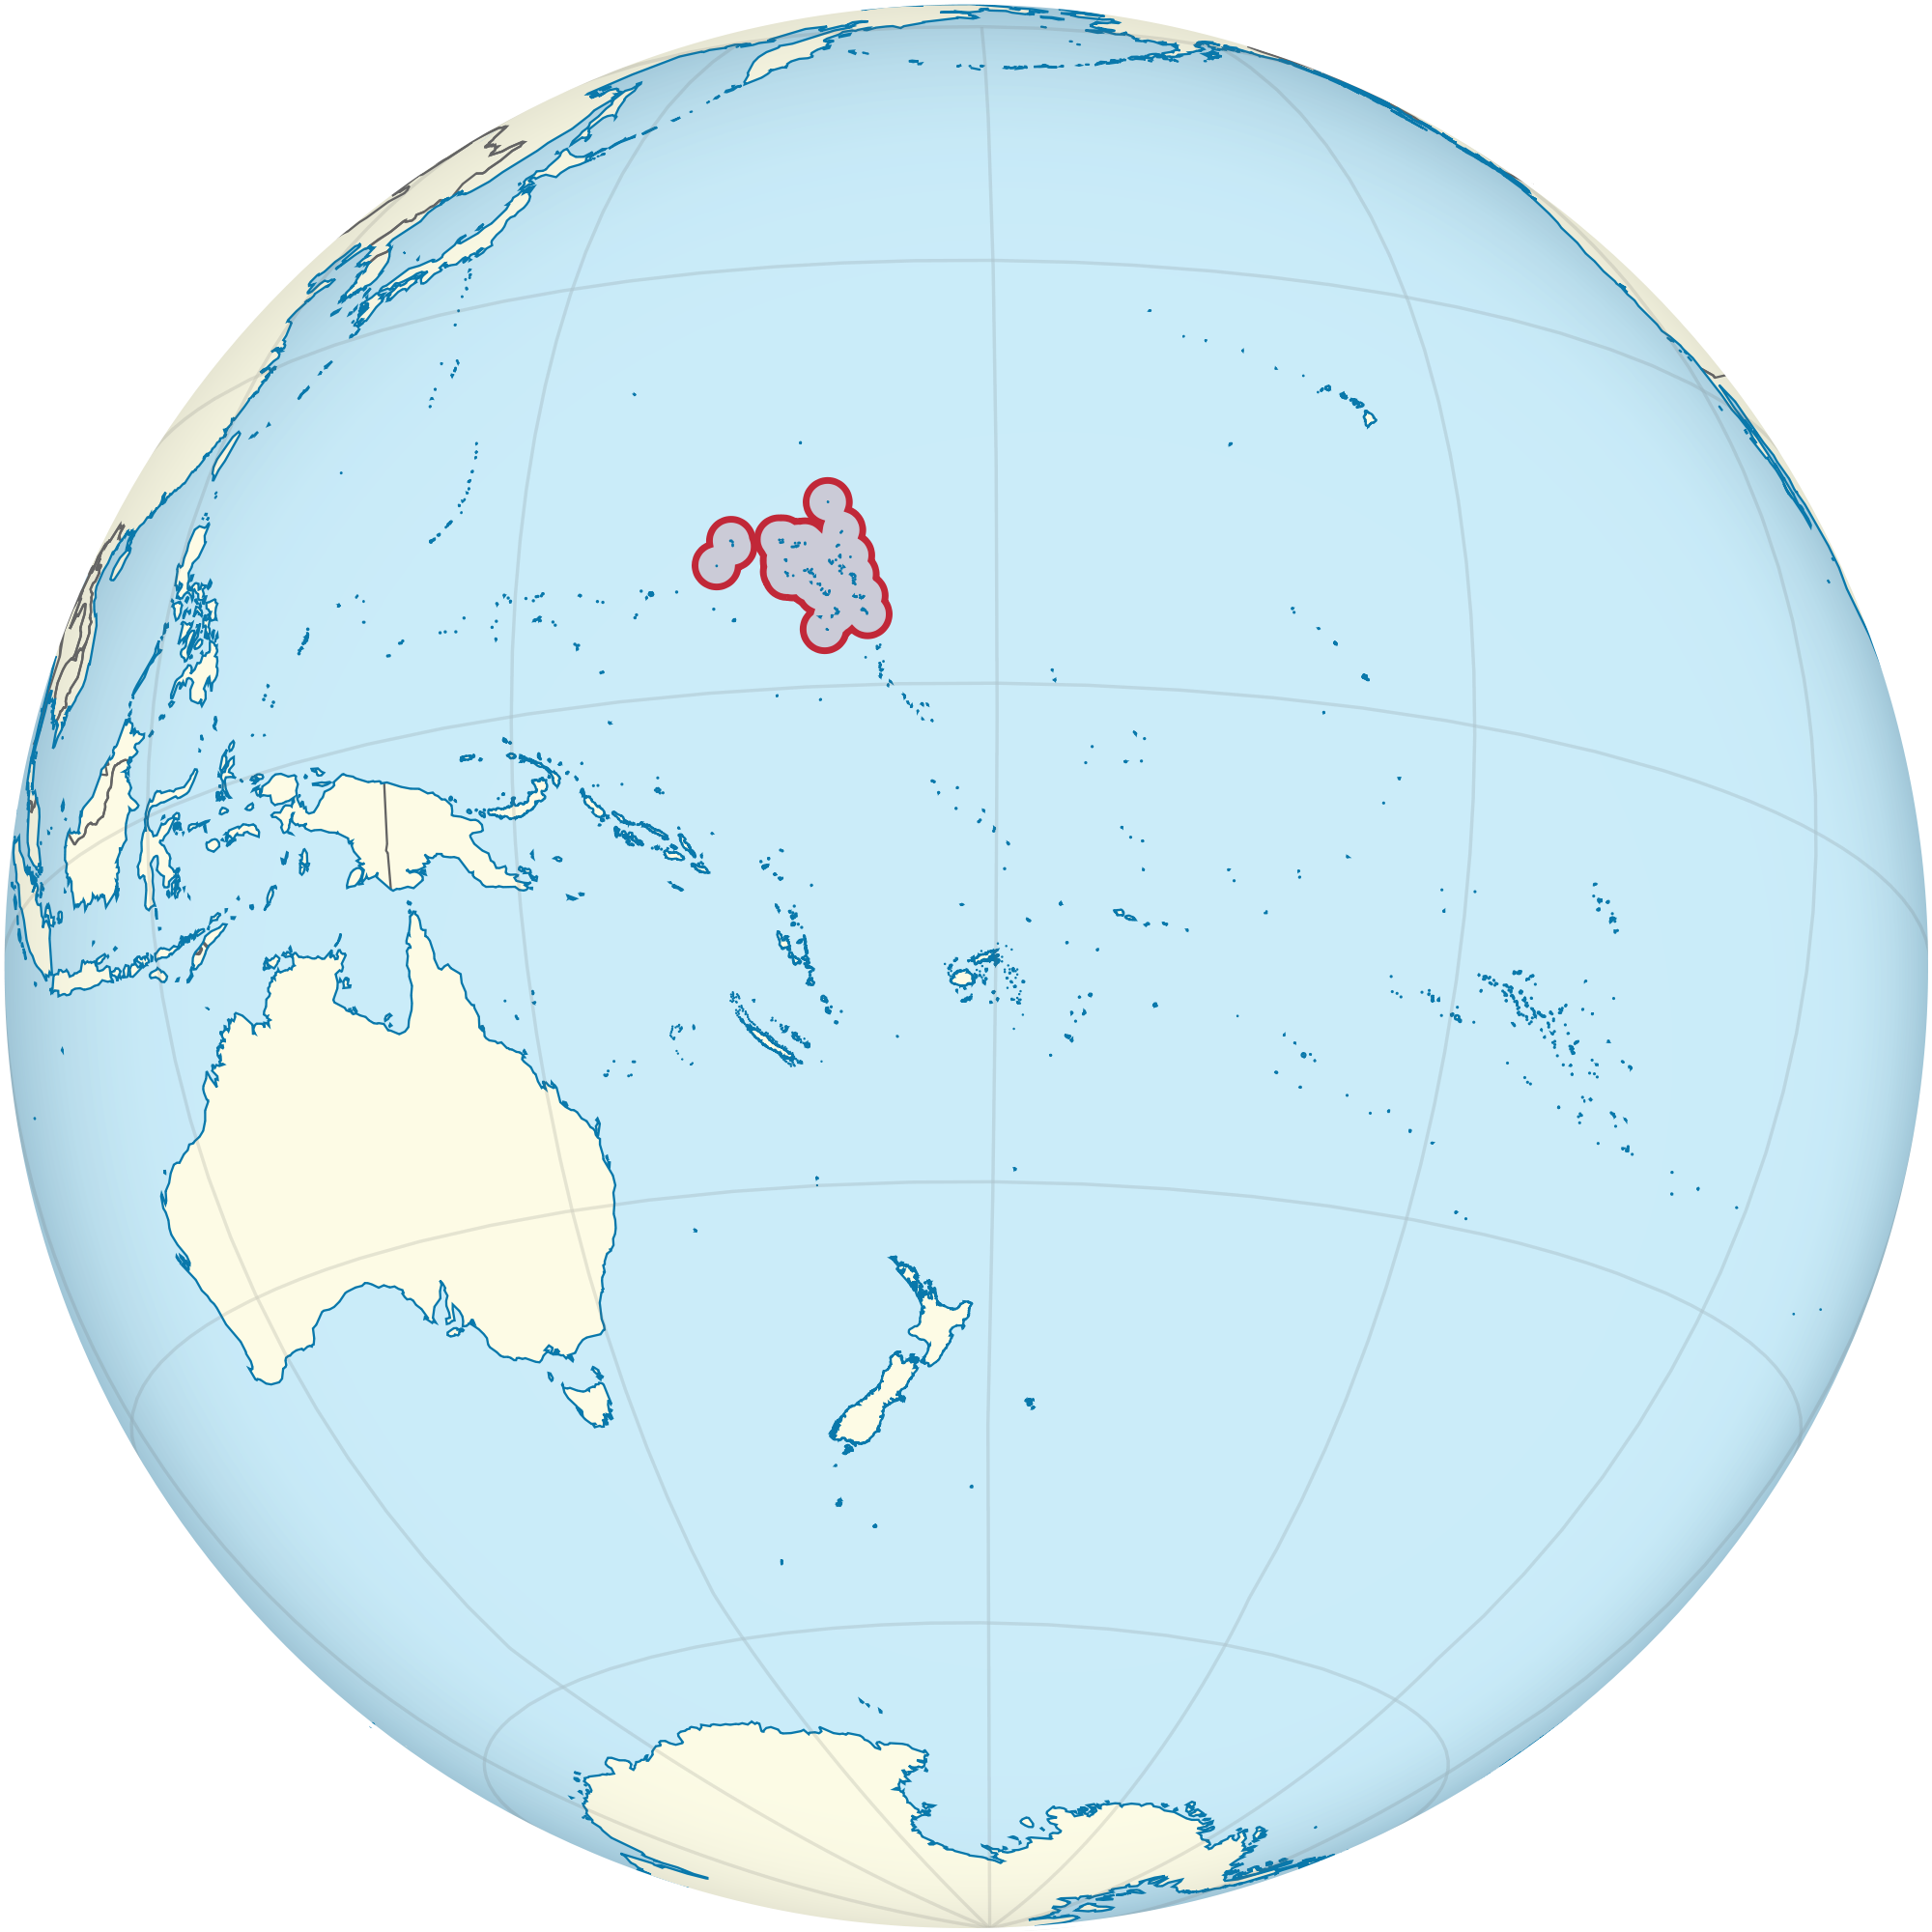 Location of the Marshall Islands in the World Map